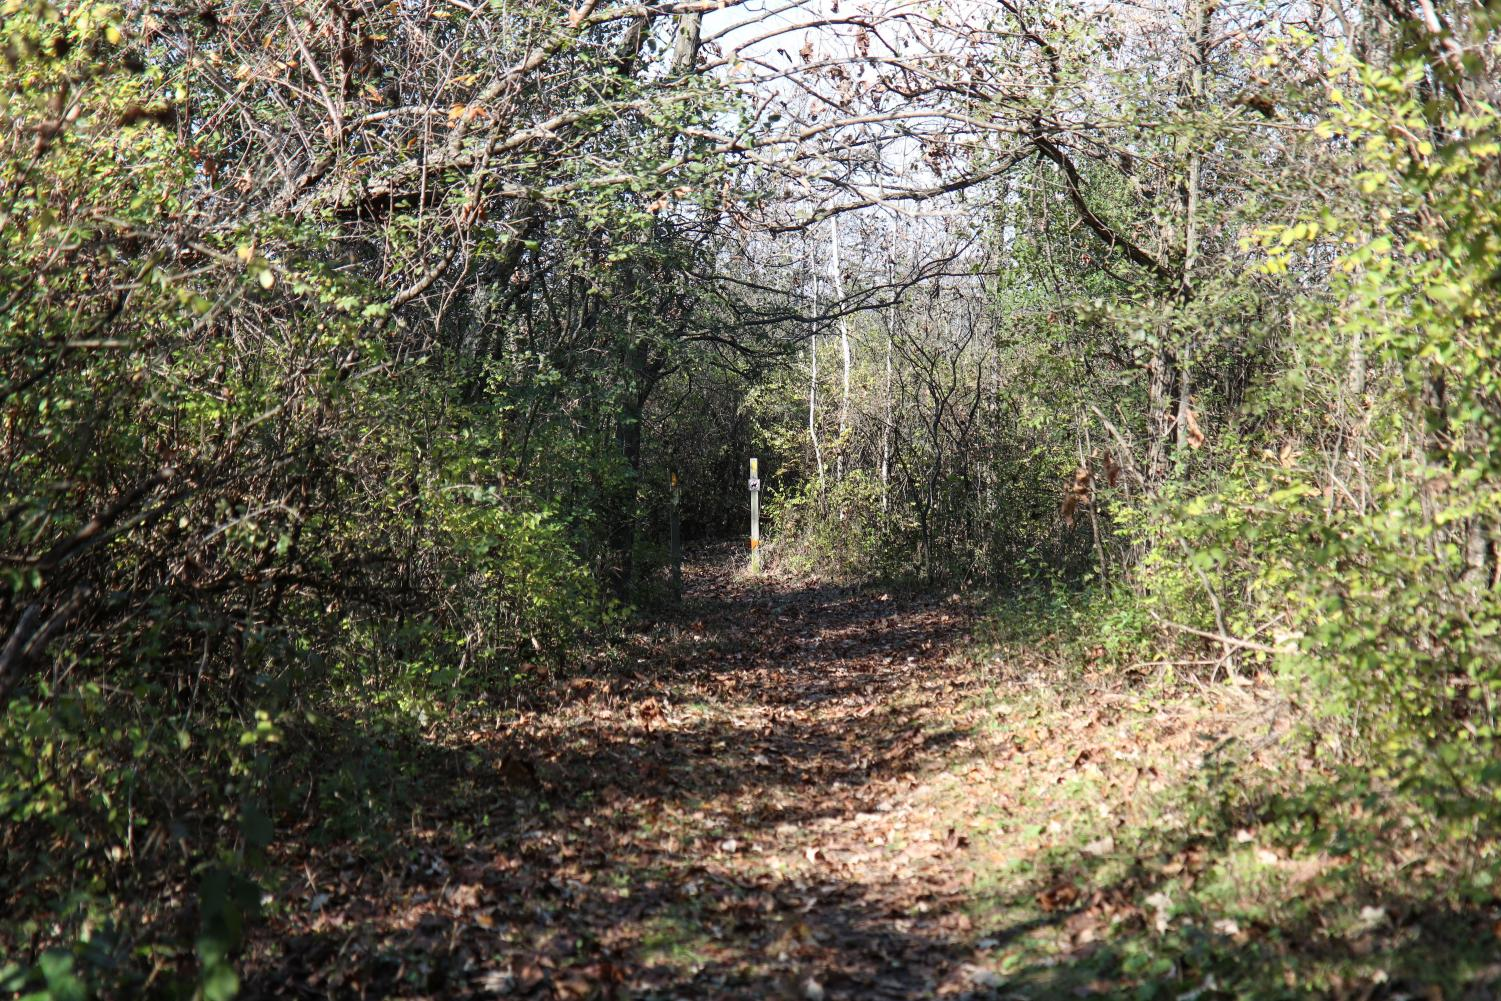 Ice Age Trail National Scenic Trail at South Kettle Moraine.